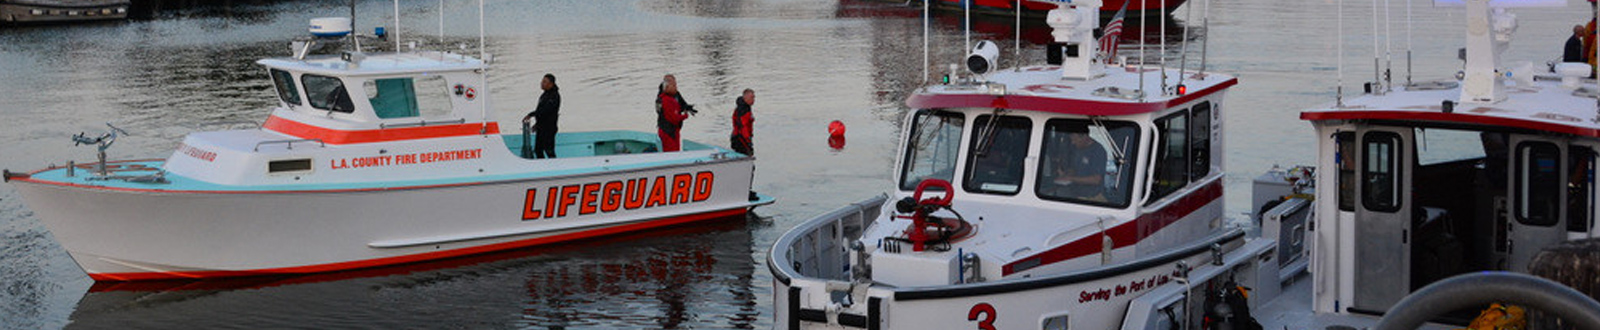 LAFD maritime boats and lifeguard